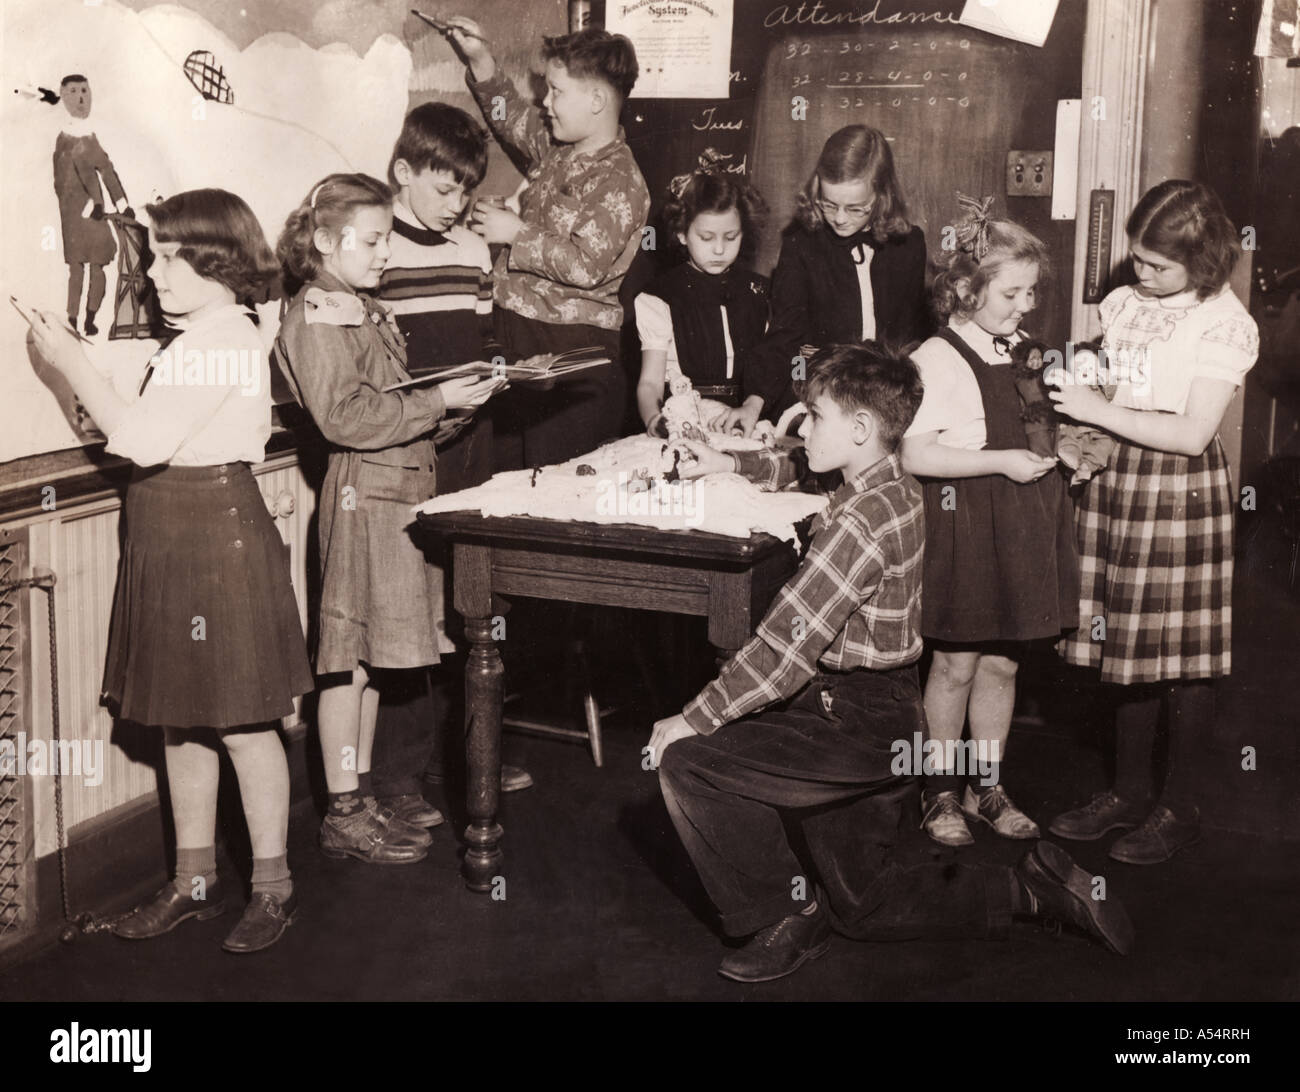 Circa 1940s photo of arts and crafts projects - Stock Image